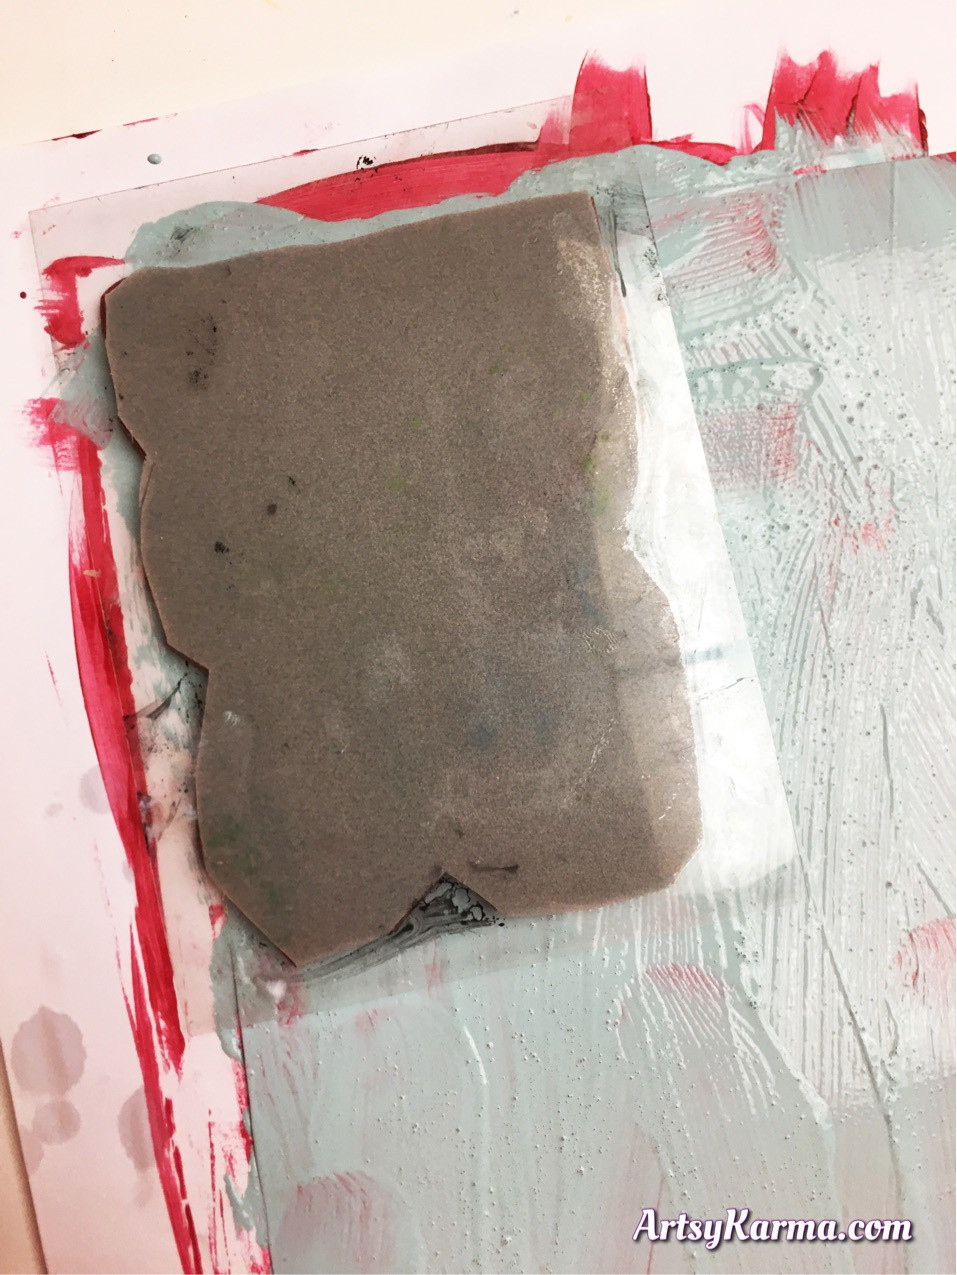 Press your stamp into wet paint do to the subtractive stamping technique